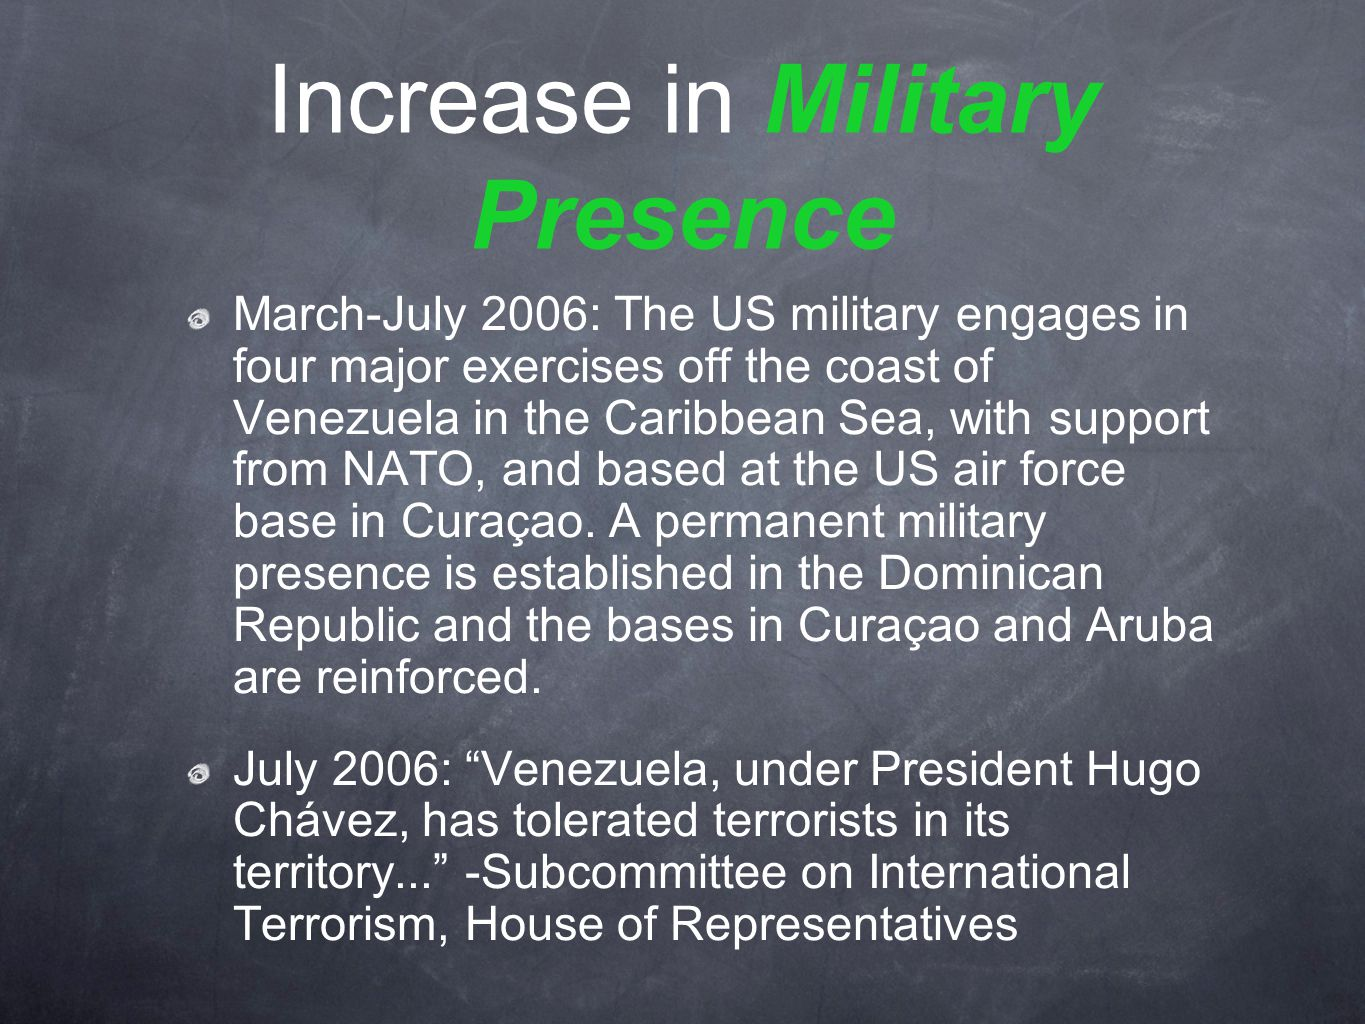 Increase in Military Presence March-July 2006: The US military engages in four major exercises off the coast of Venezuela in the Caribbean Sea, with support from NATO, and based at the US air force base in Curaçao.